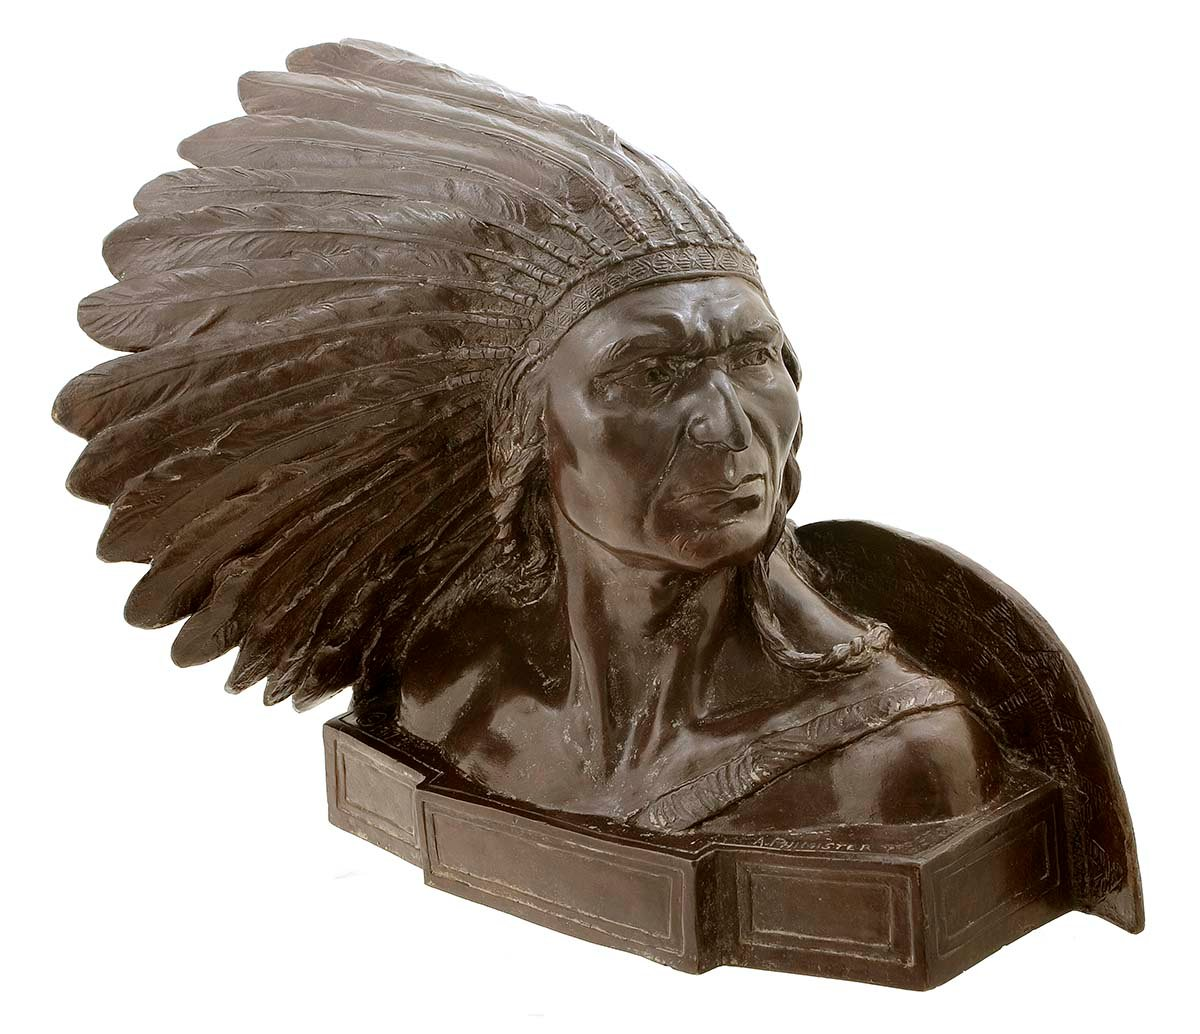 "Alexander Phimister Proctor (1860-1950). ""'Sundown,' Nez Perce's Chief,"" modeled 1916, cast initially 1917. Bronze, 11.5 x 12.5 x 10.5 inches. Gift of A. Phimister Proctor Museum, with special thanks to Sandy and Sally Church. 18.08.5"